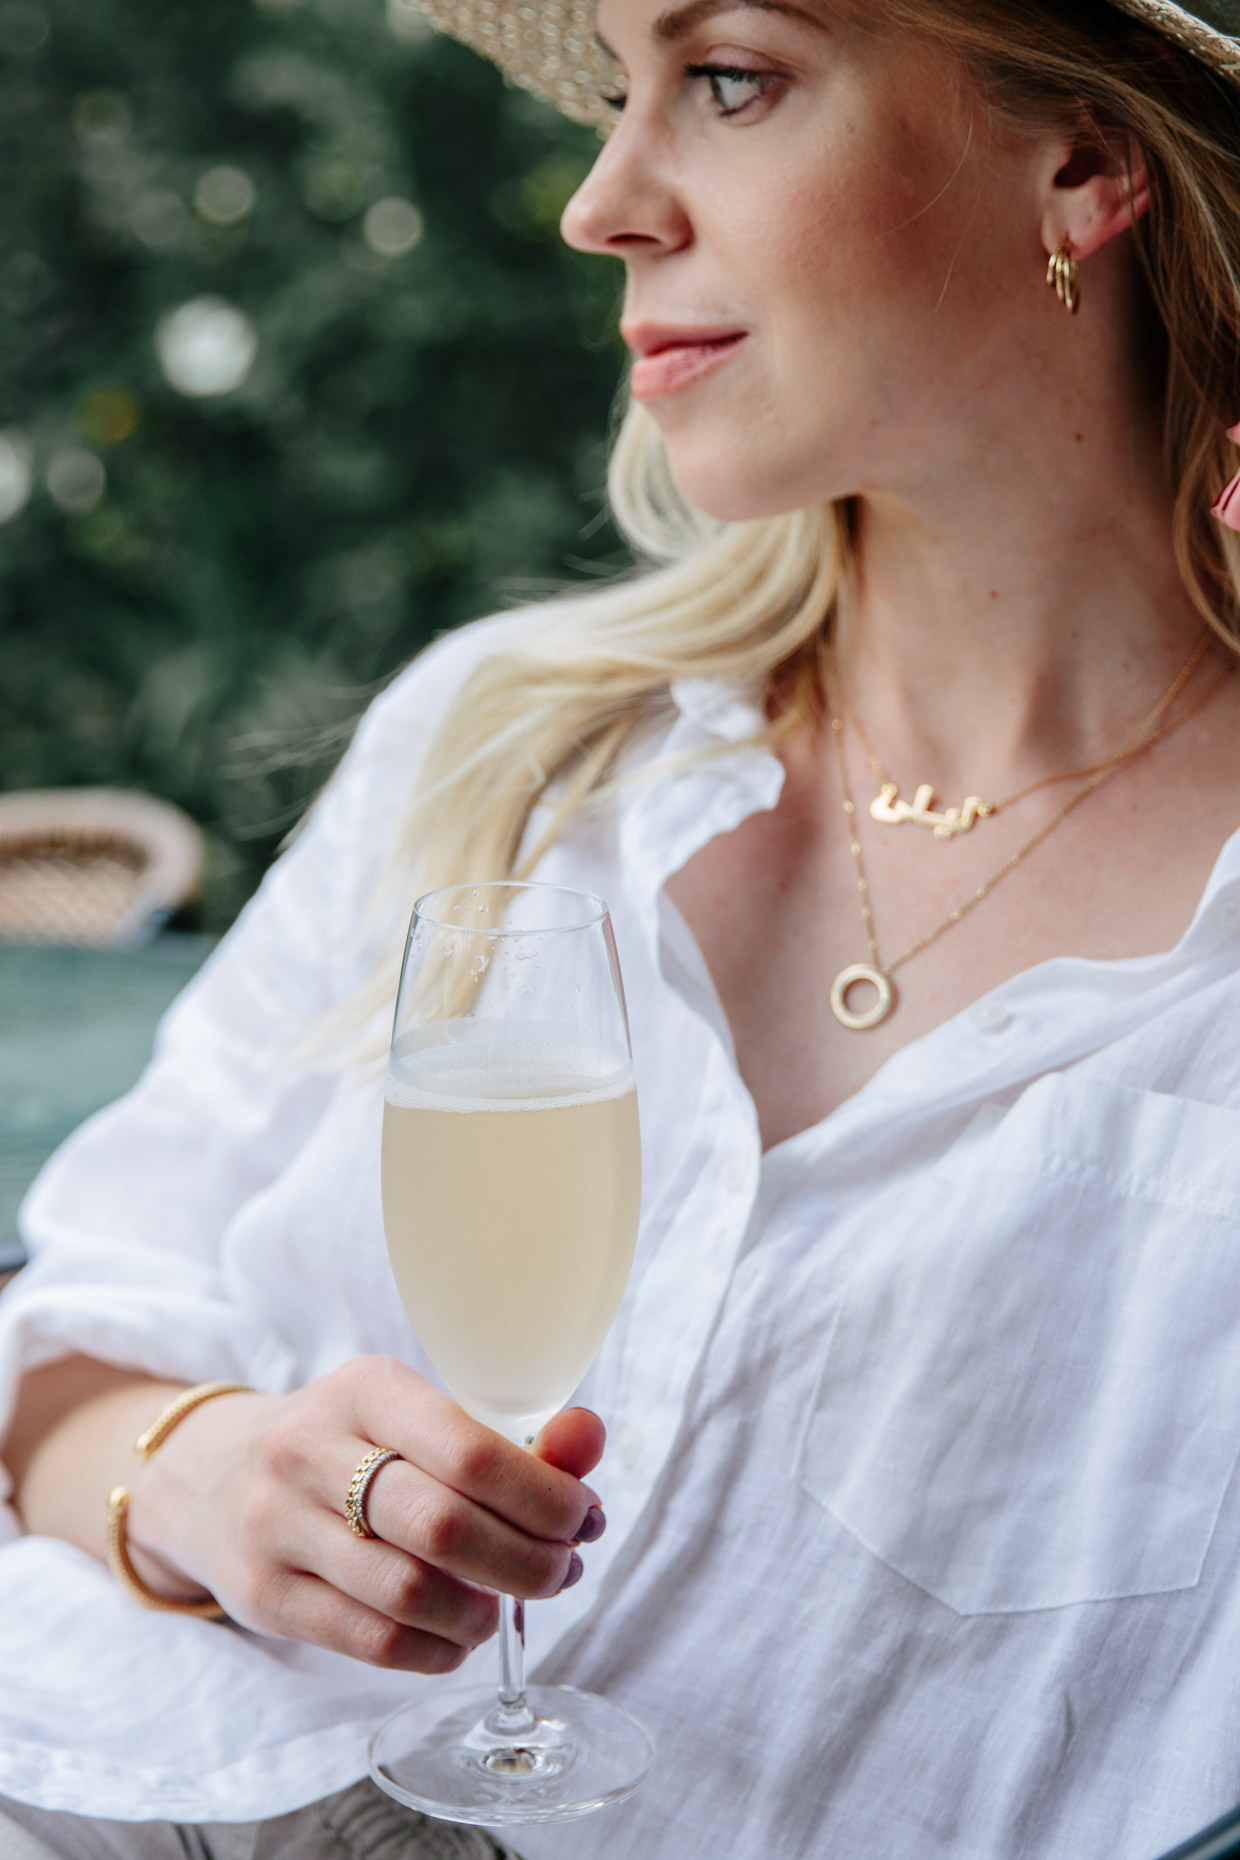 Meagan Brandon of Meagan's Moda showcases sentimental jewelry and how to layer gold necklaces